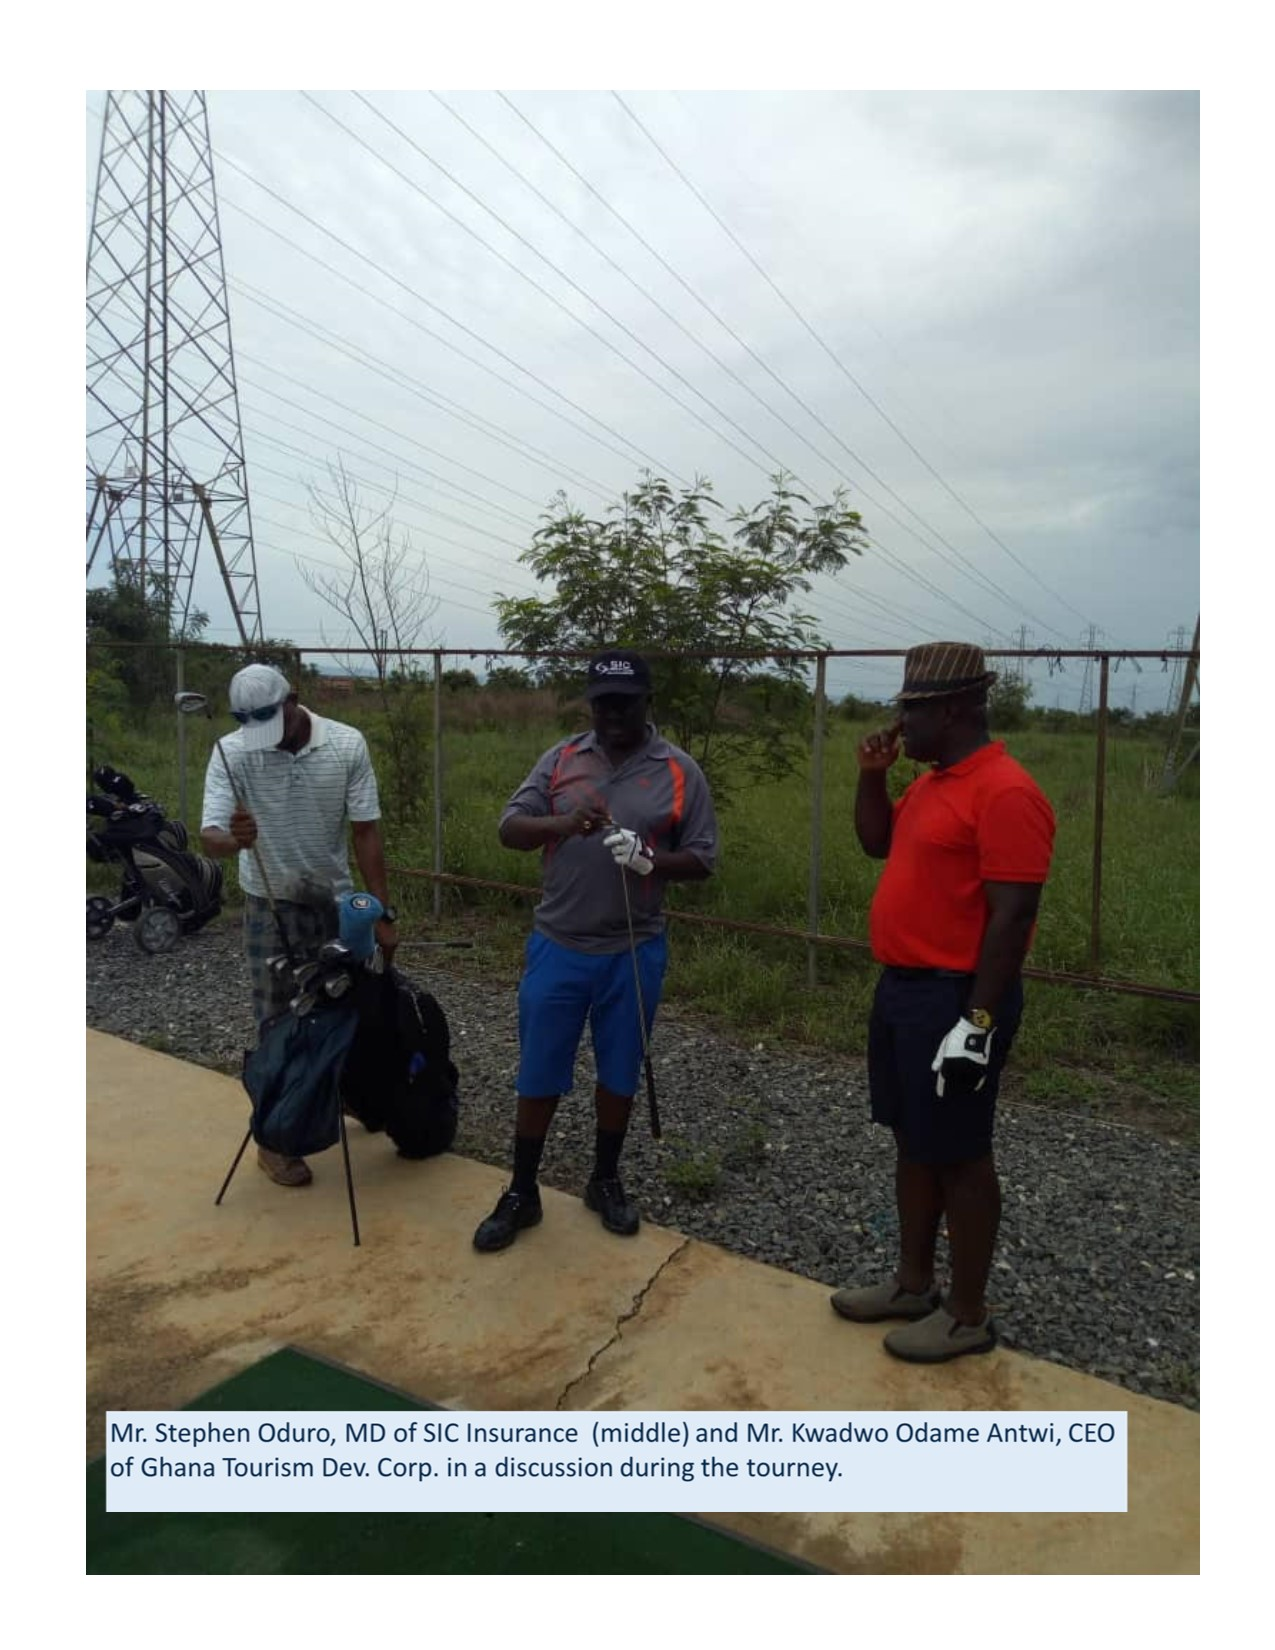 SIC Insurance/Ghana Tourism Development Corporation holds 1st 'Centre of the World' golf tourney at Tema